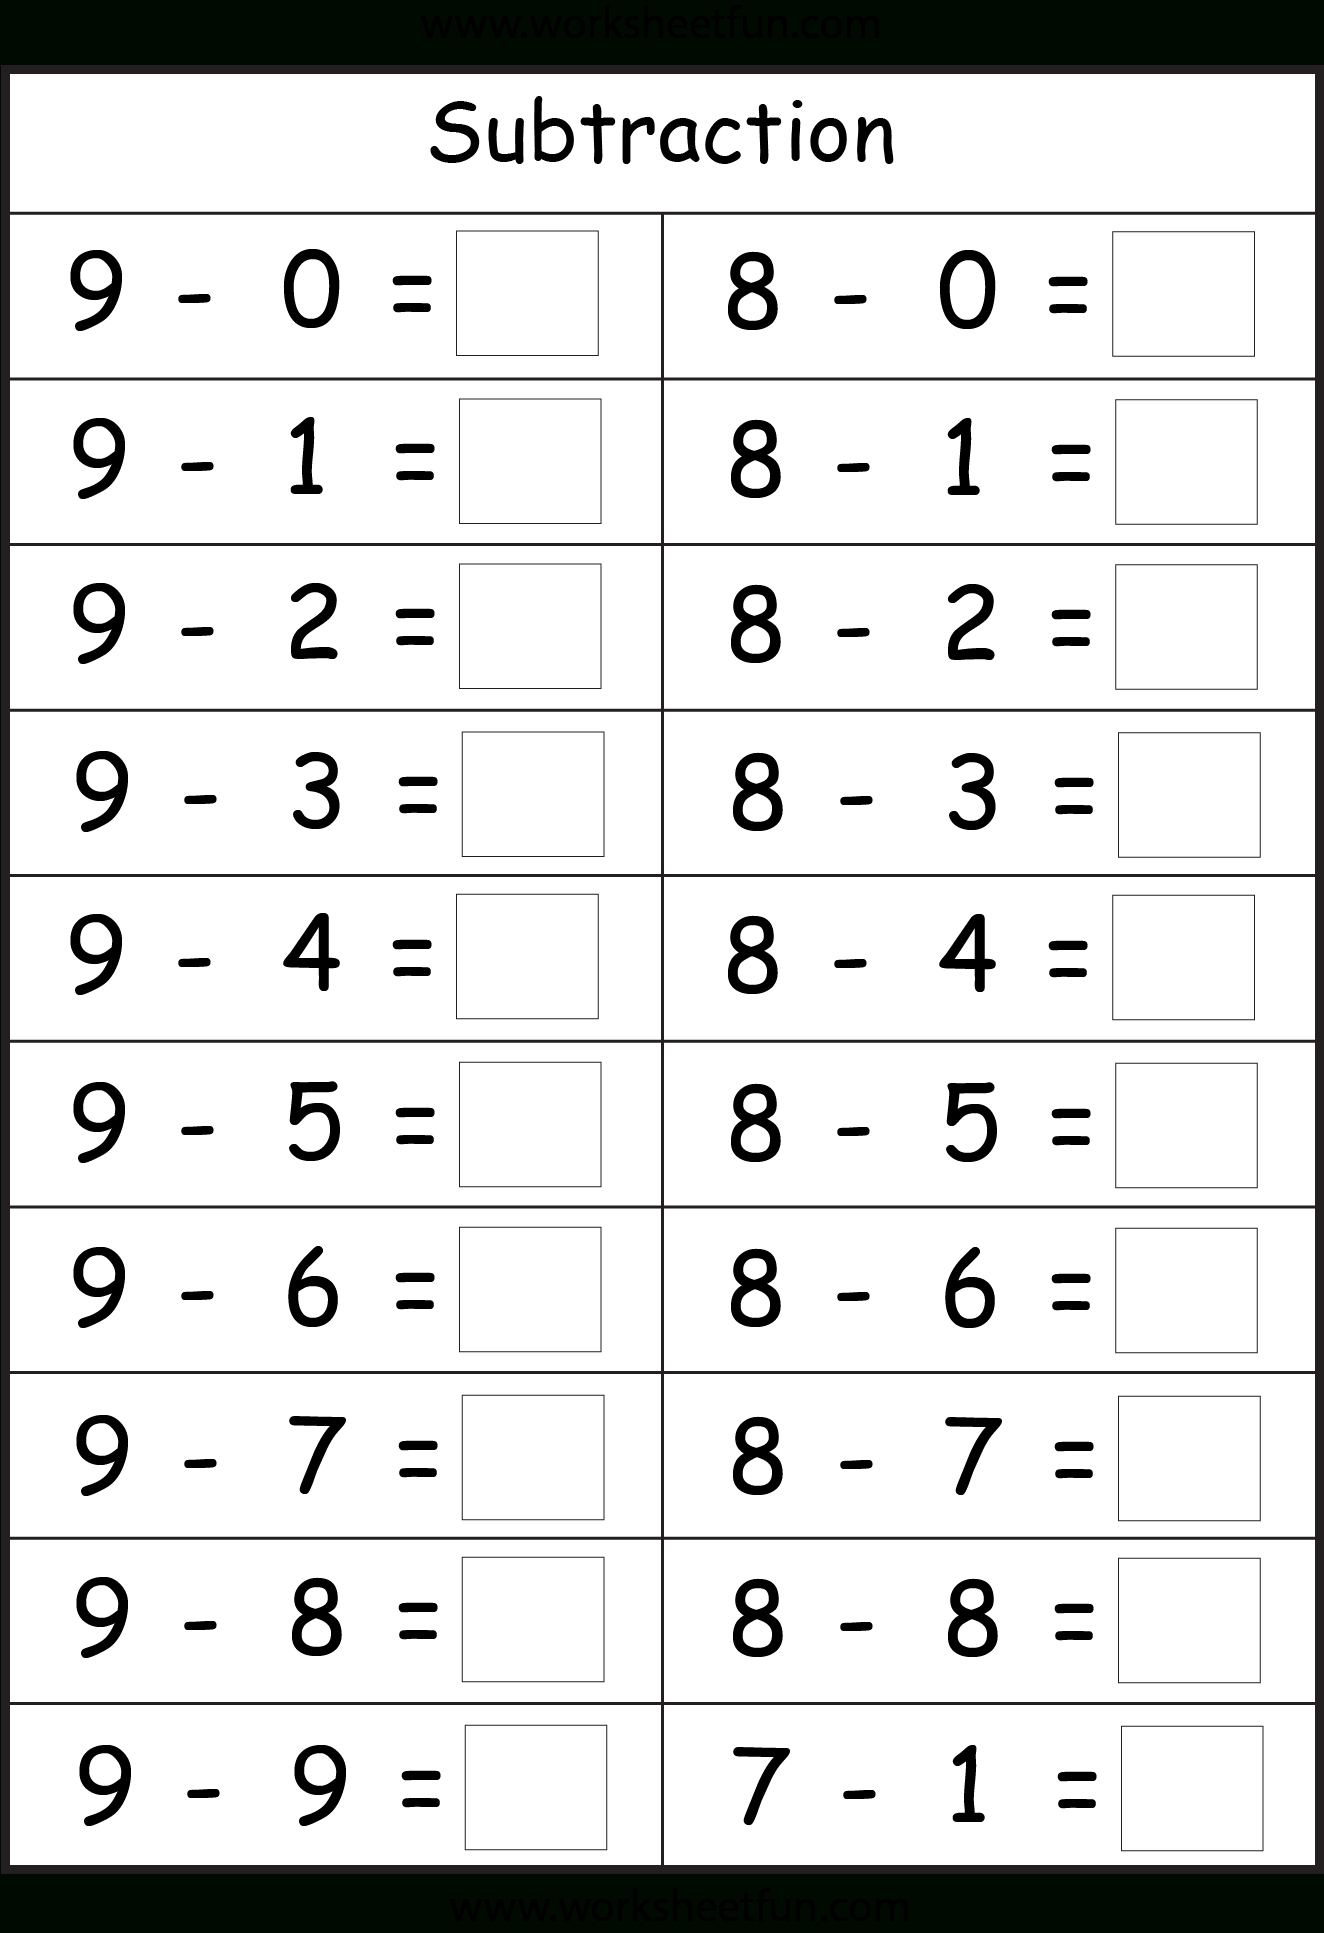 Subtraction - 4 Worksheets | Printable Worksheets | Worksheets - Free Printable Subtraction Worksheets